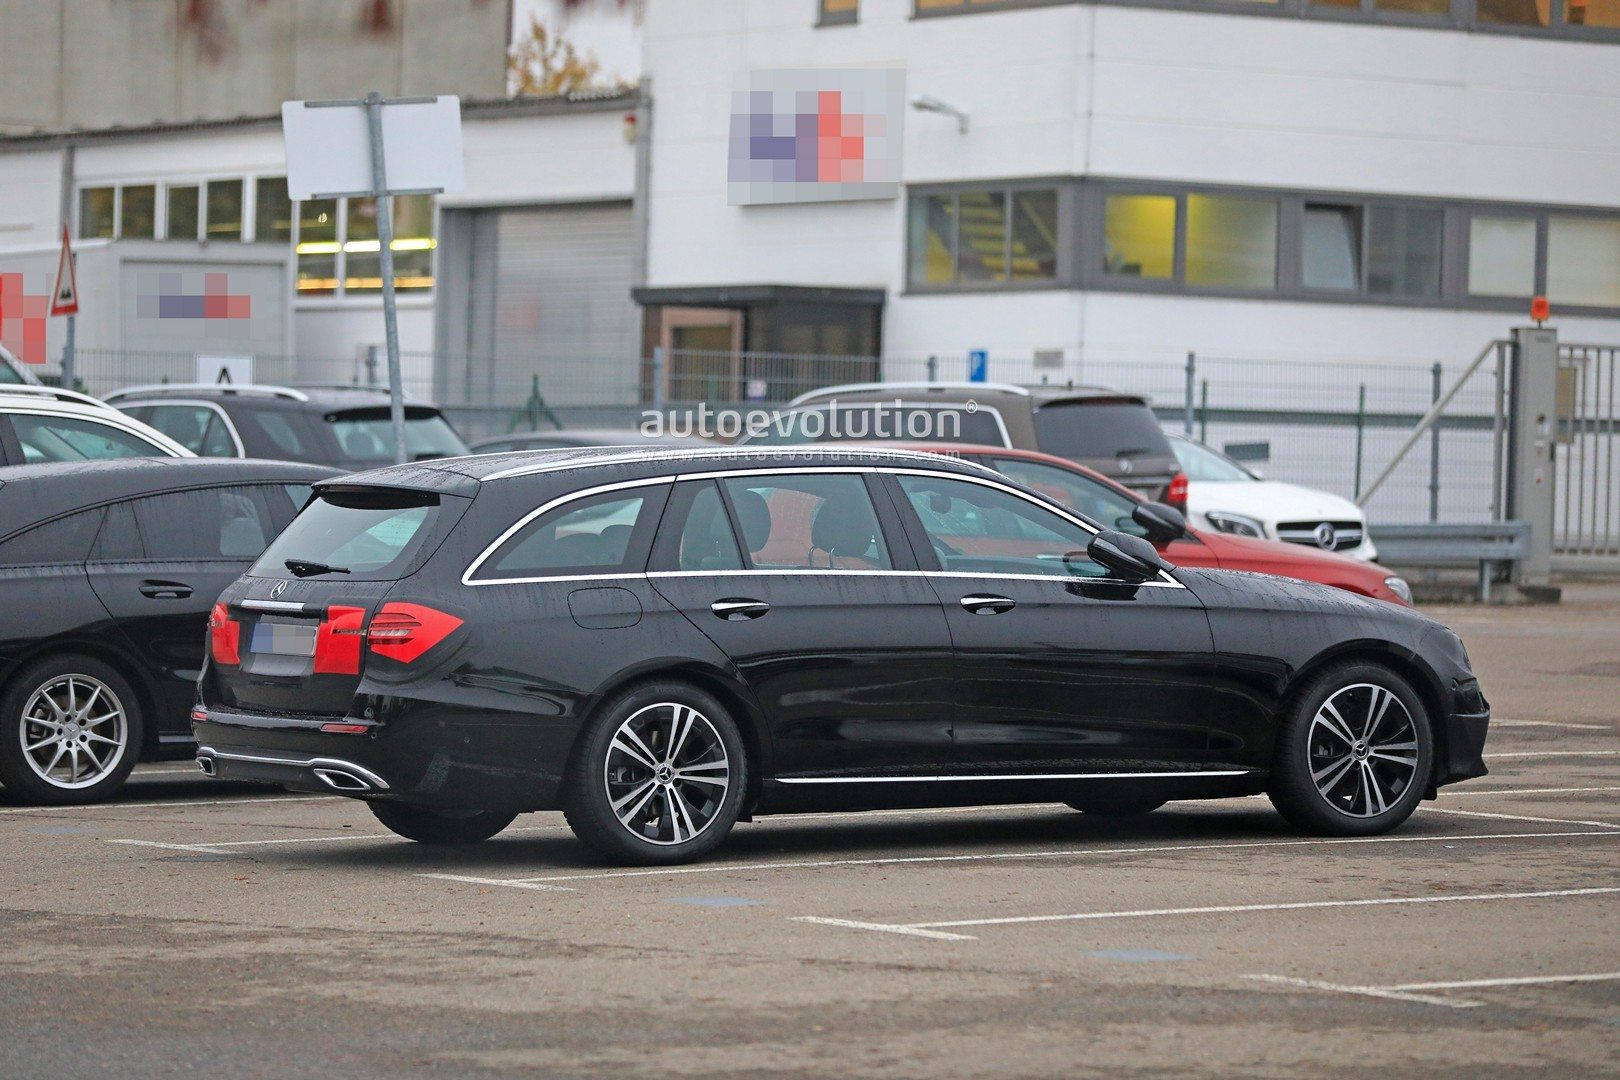 2020 - [Mercedes-Benz] Classe E restylée  2020-mercedes-e-class-spied-is-getting-a-new-face-inspided-by-cls-class_8